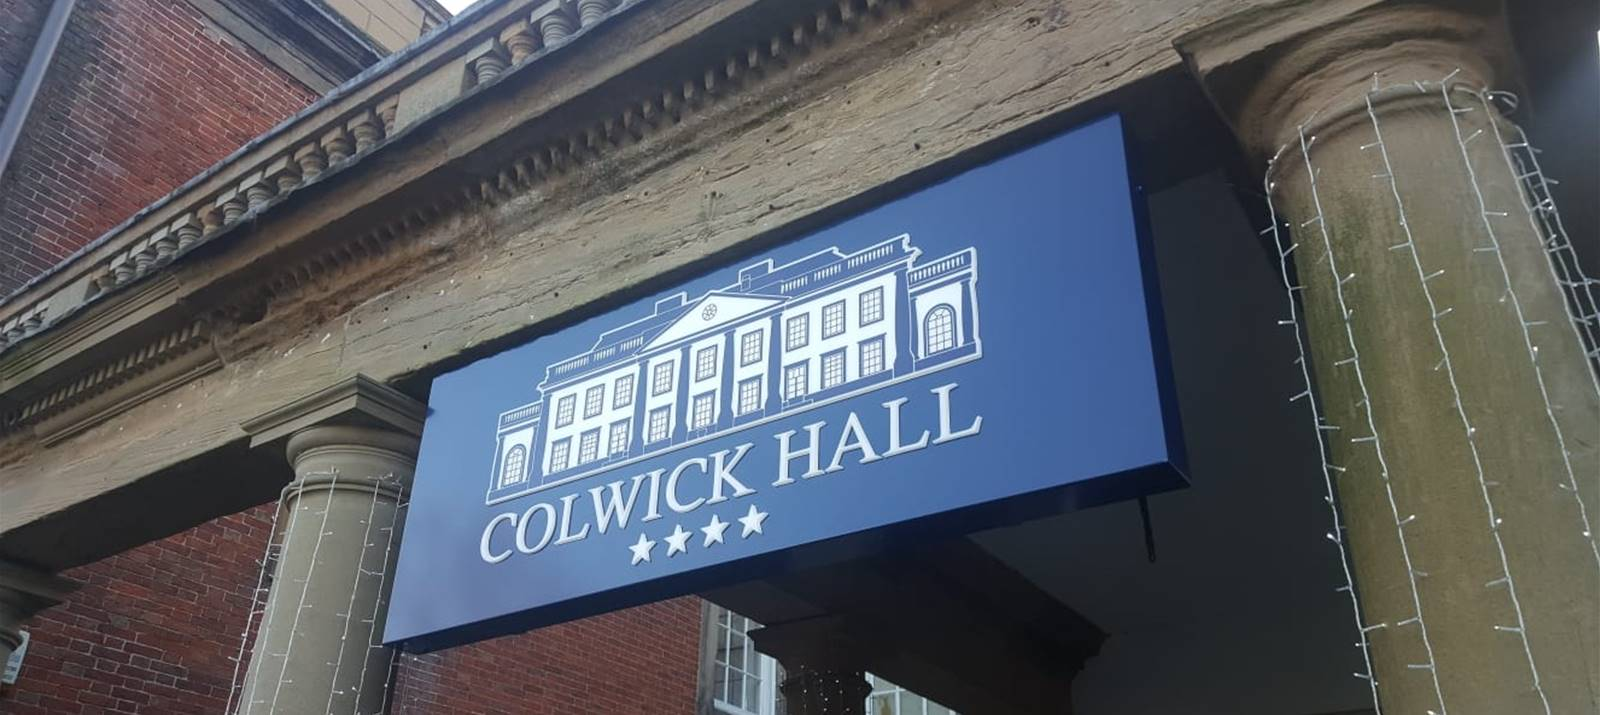 Outdoor entrance sign for 4* Colwick Hall